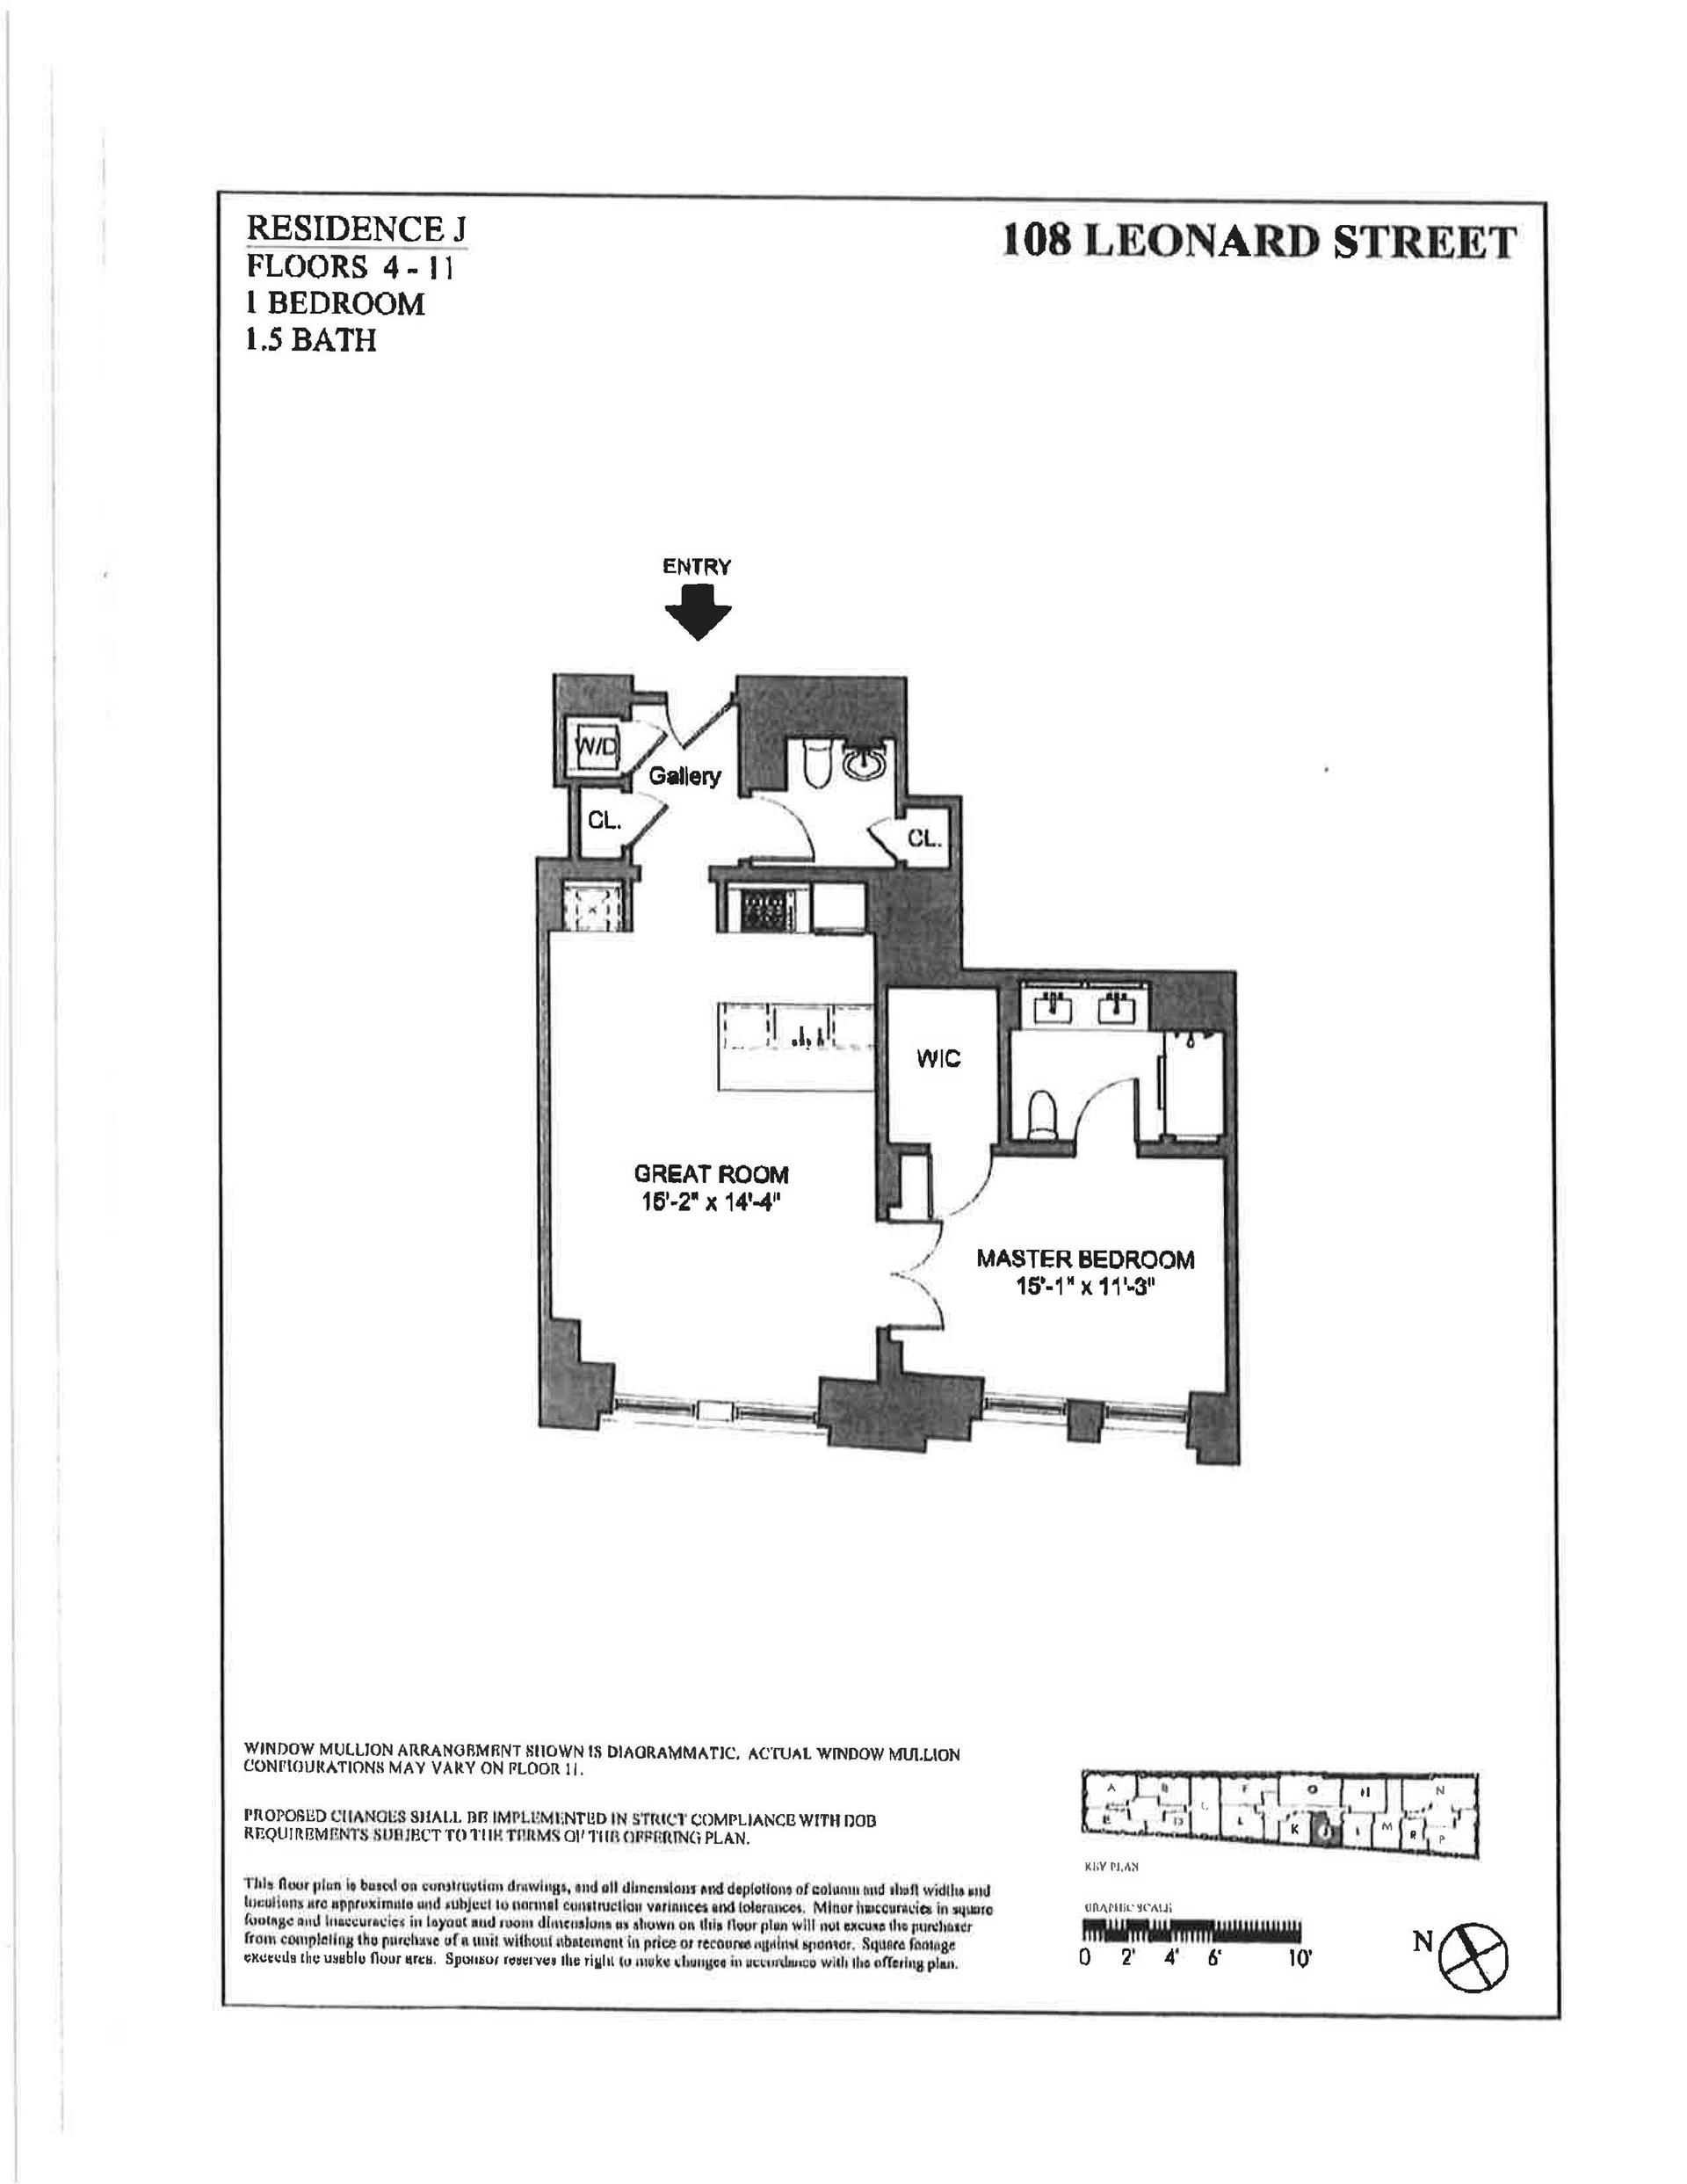 Floor plan of 108 Leonard St, 4J - TriBeCa, New York